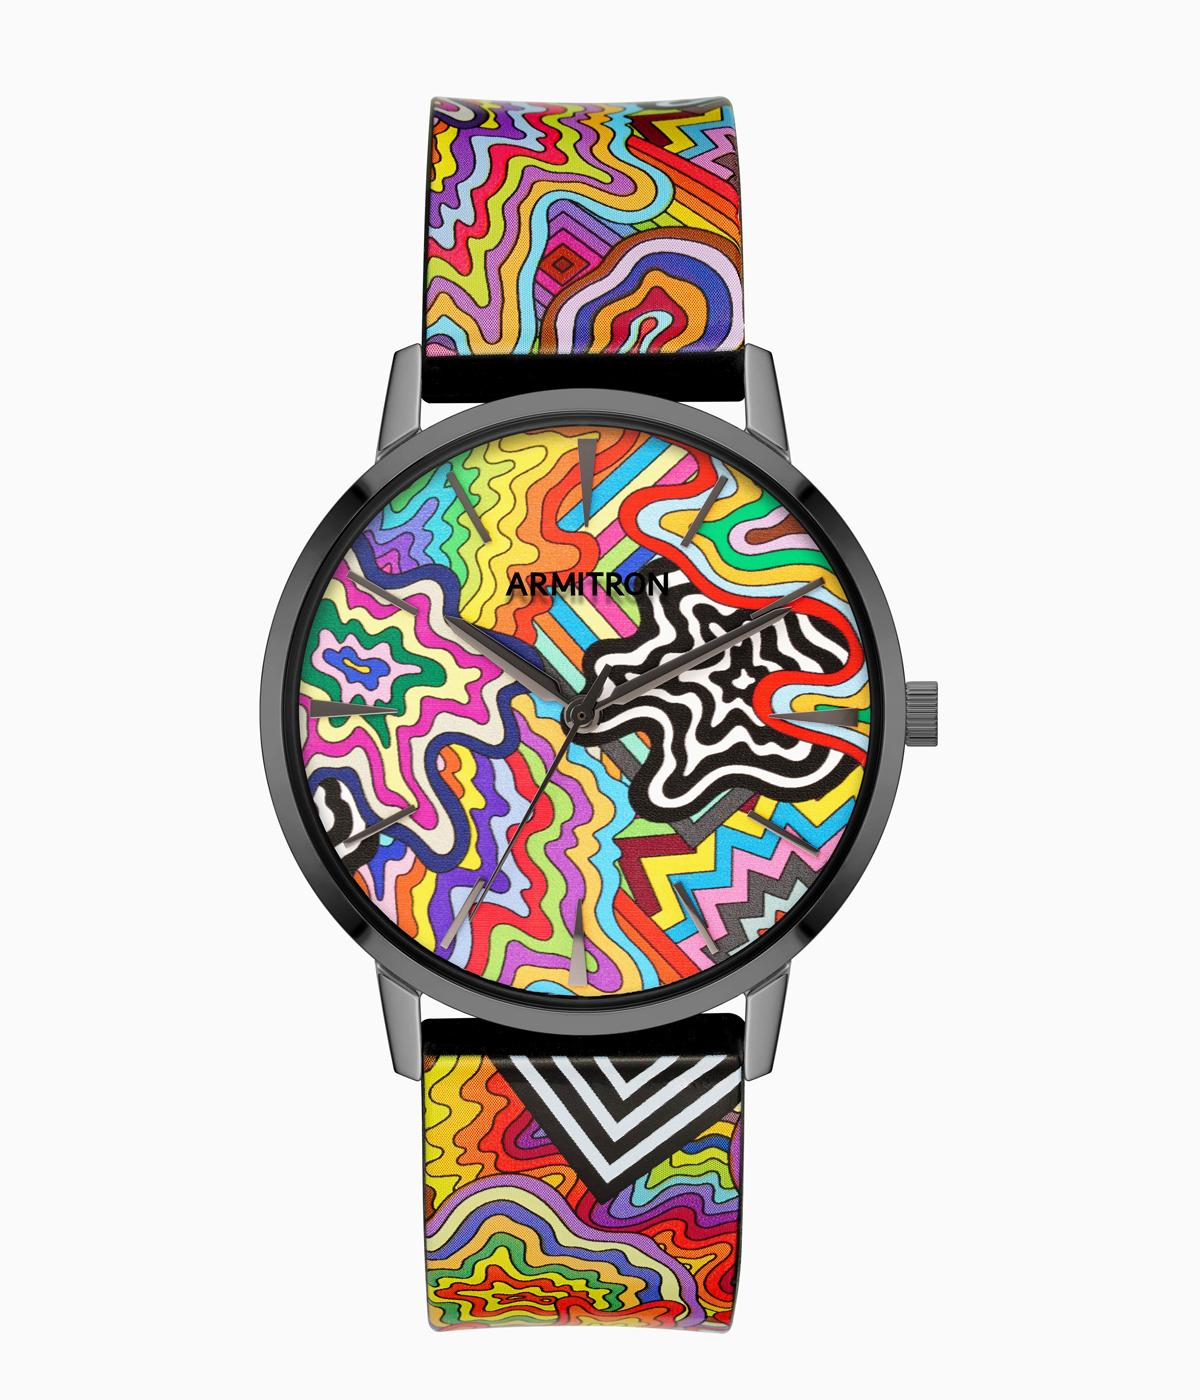 Brightly coloured watch on a white background